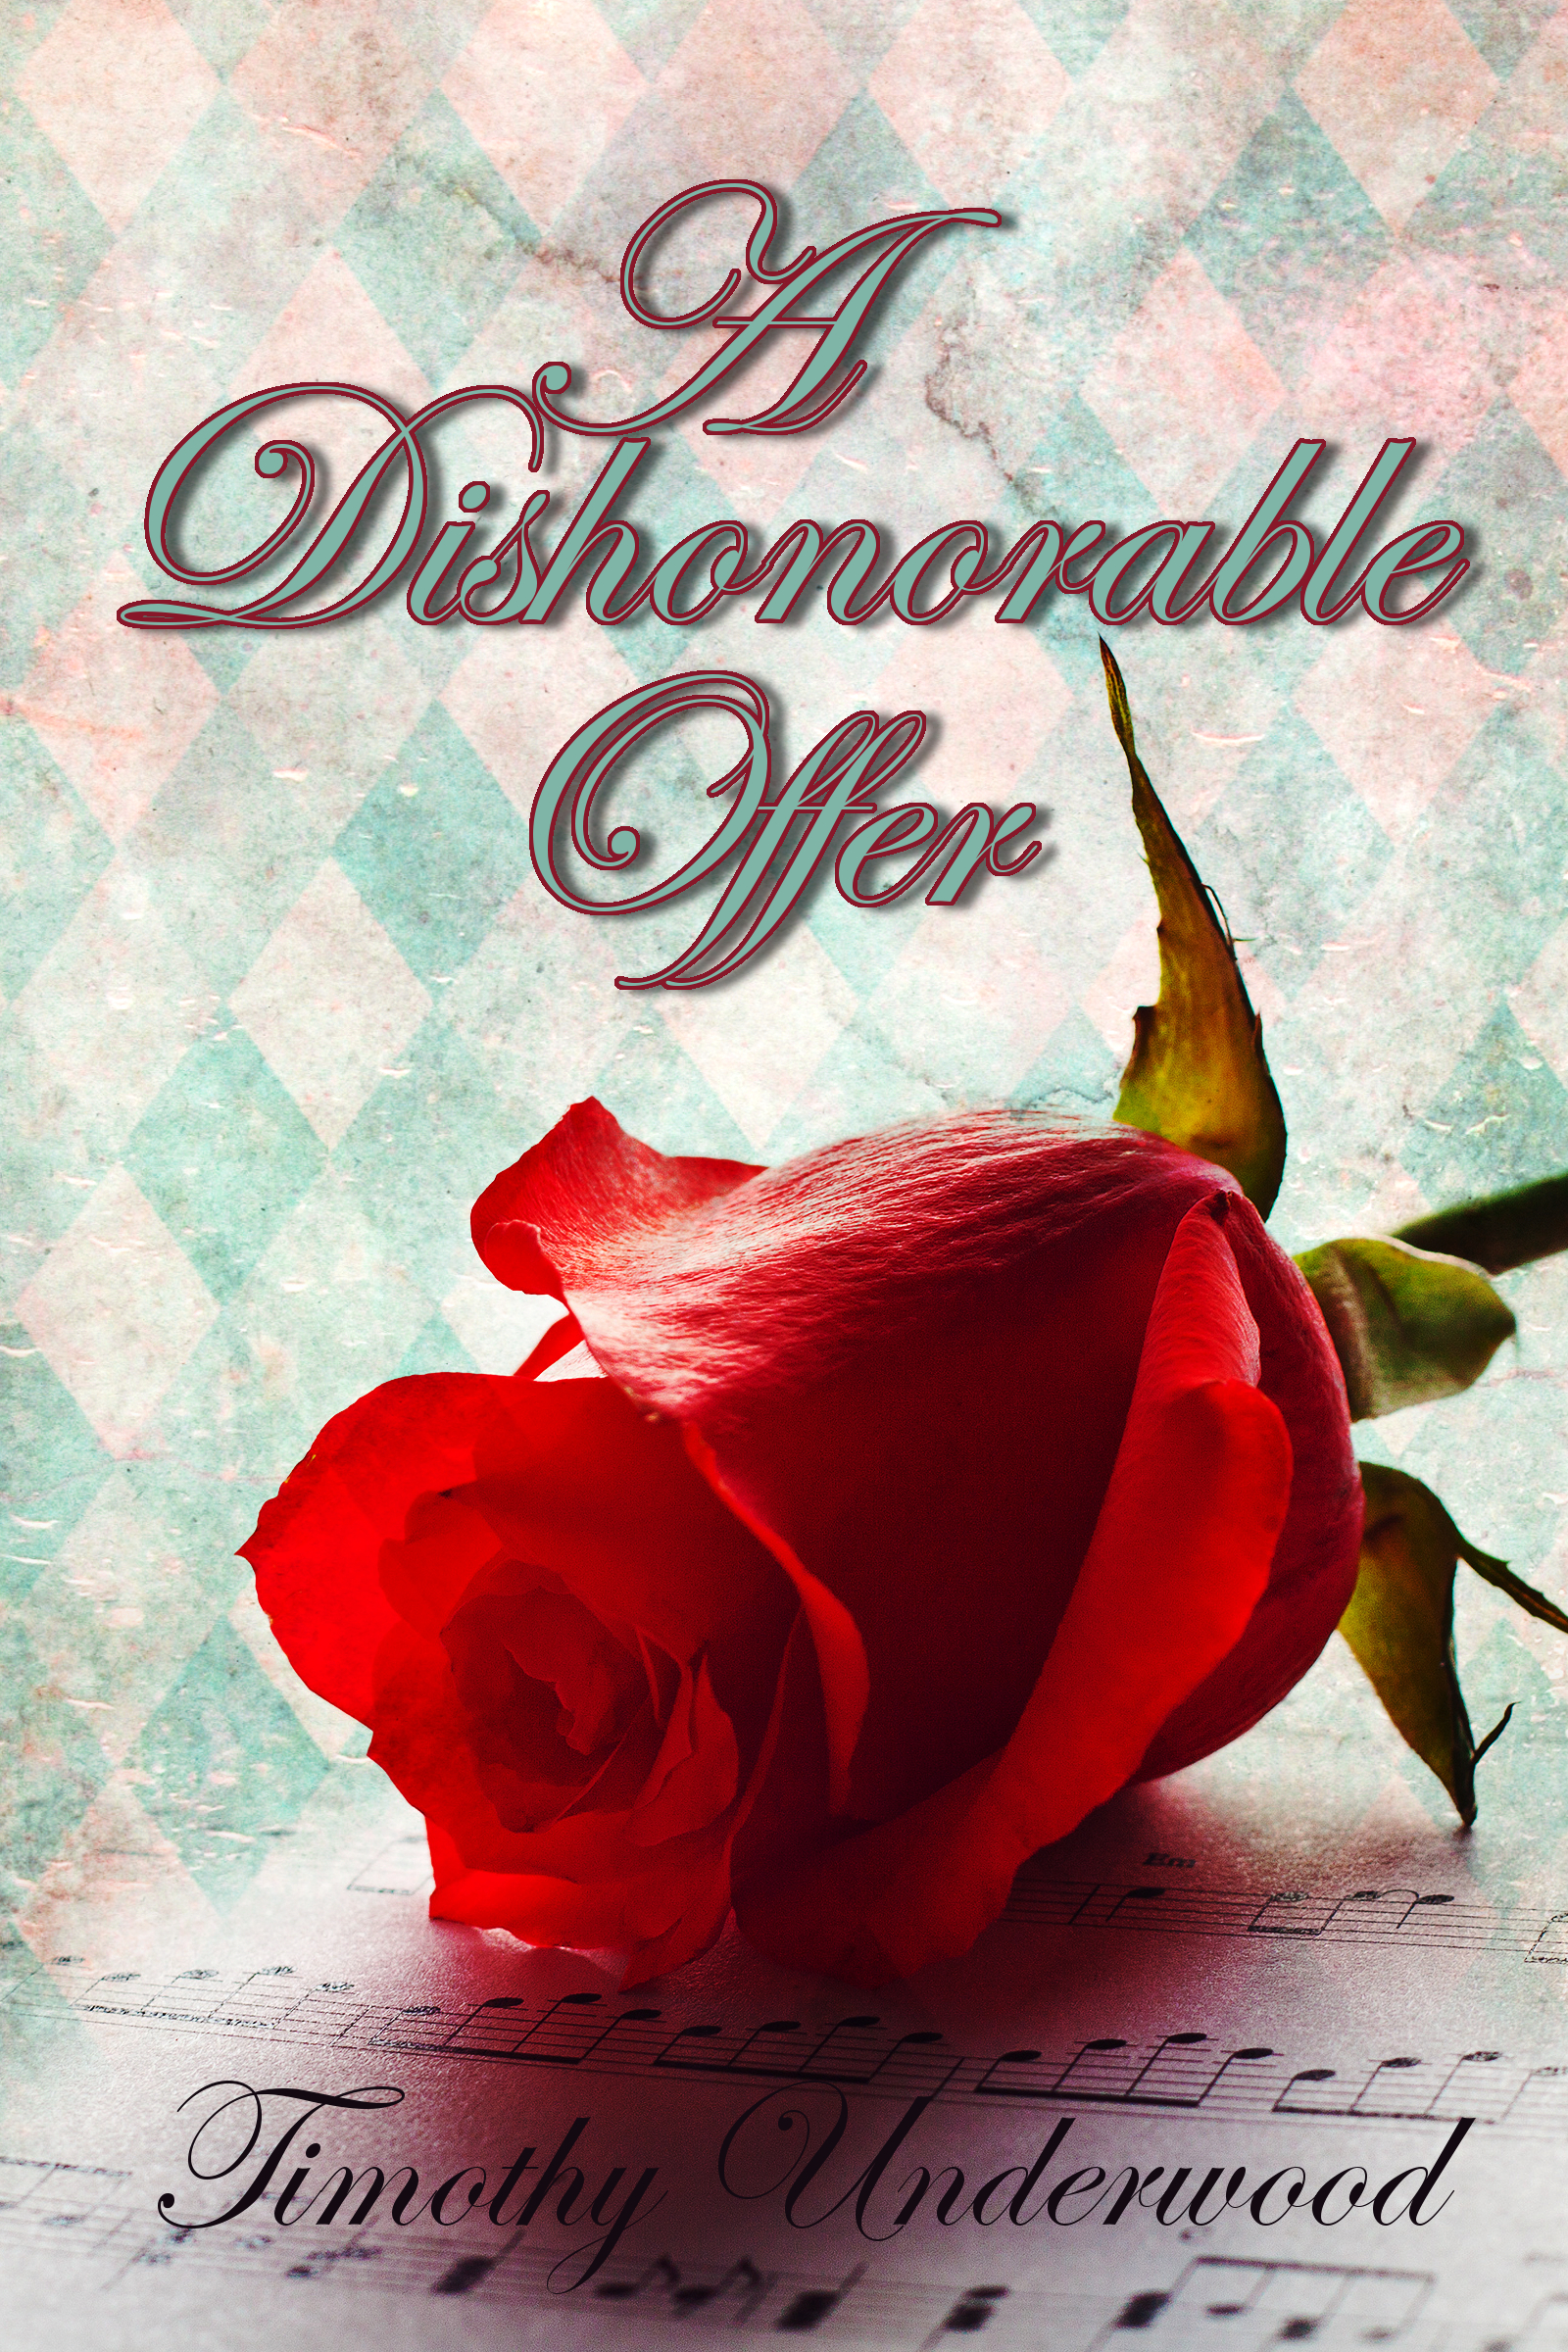 Smashwords regency free ebooks a dishonorable offer by timothy underwood fandeluxe Image collections